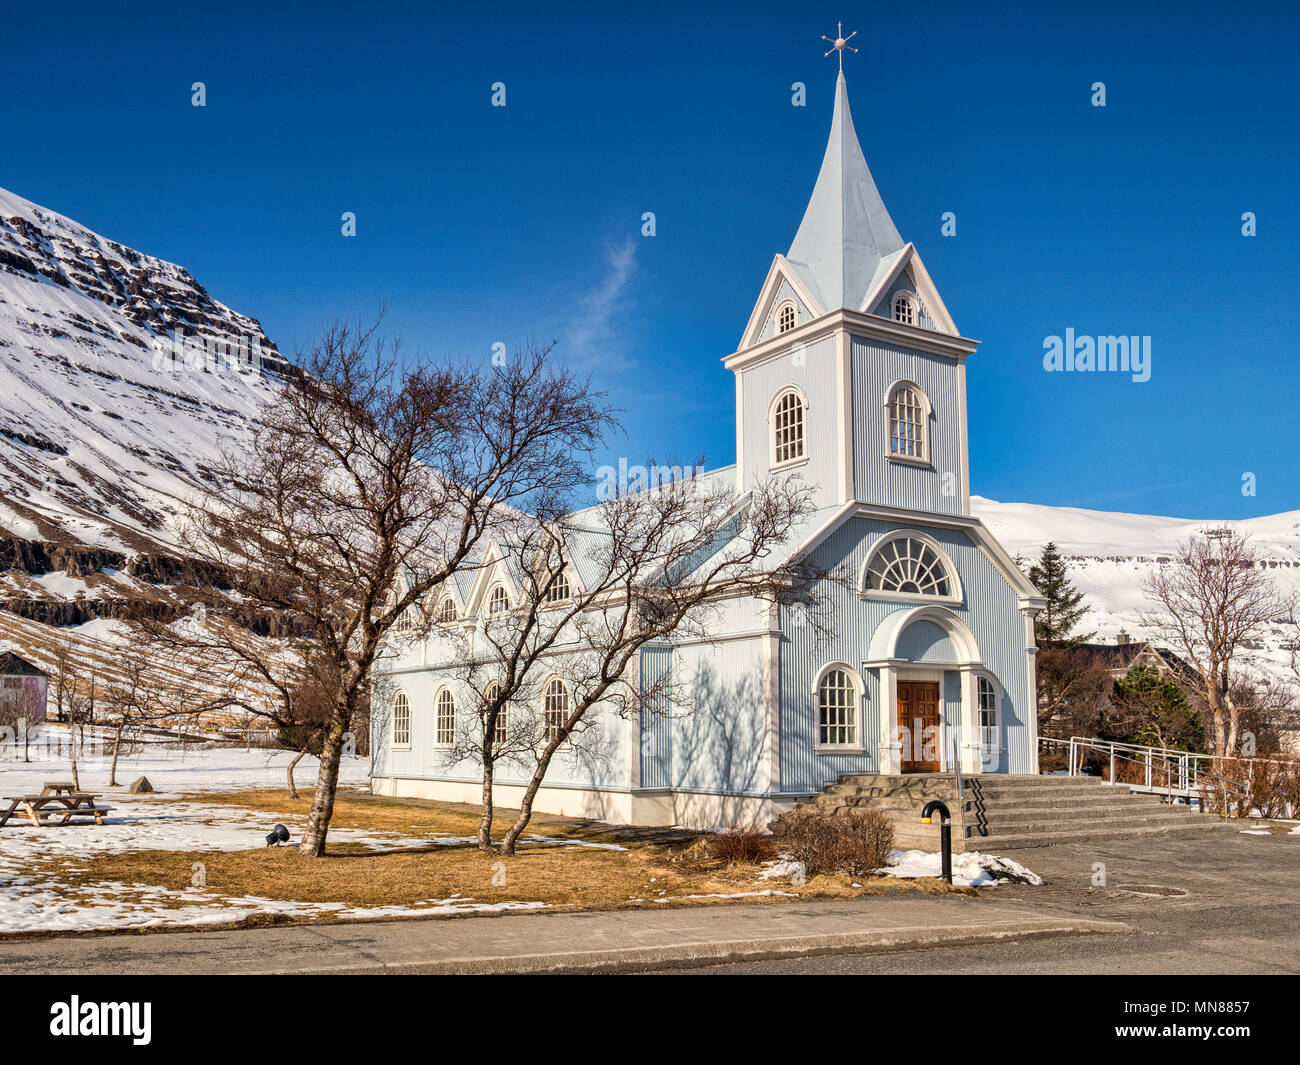 The famous Blue Church at Seydisfjordur, East Iceland, on a bright spring day with snowy mountains. - Stock Image